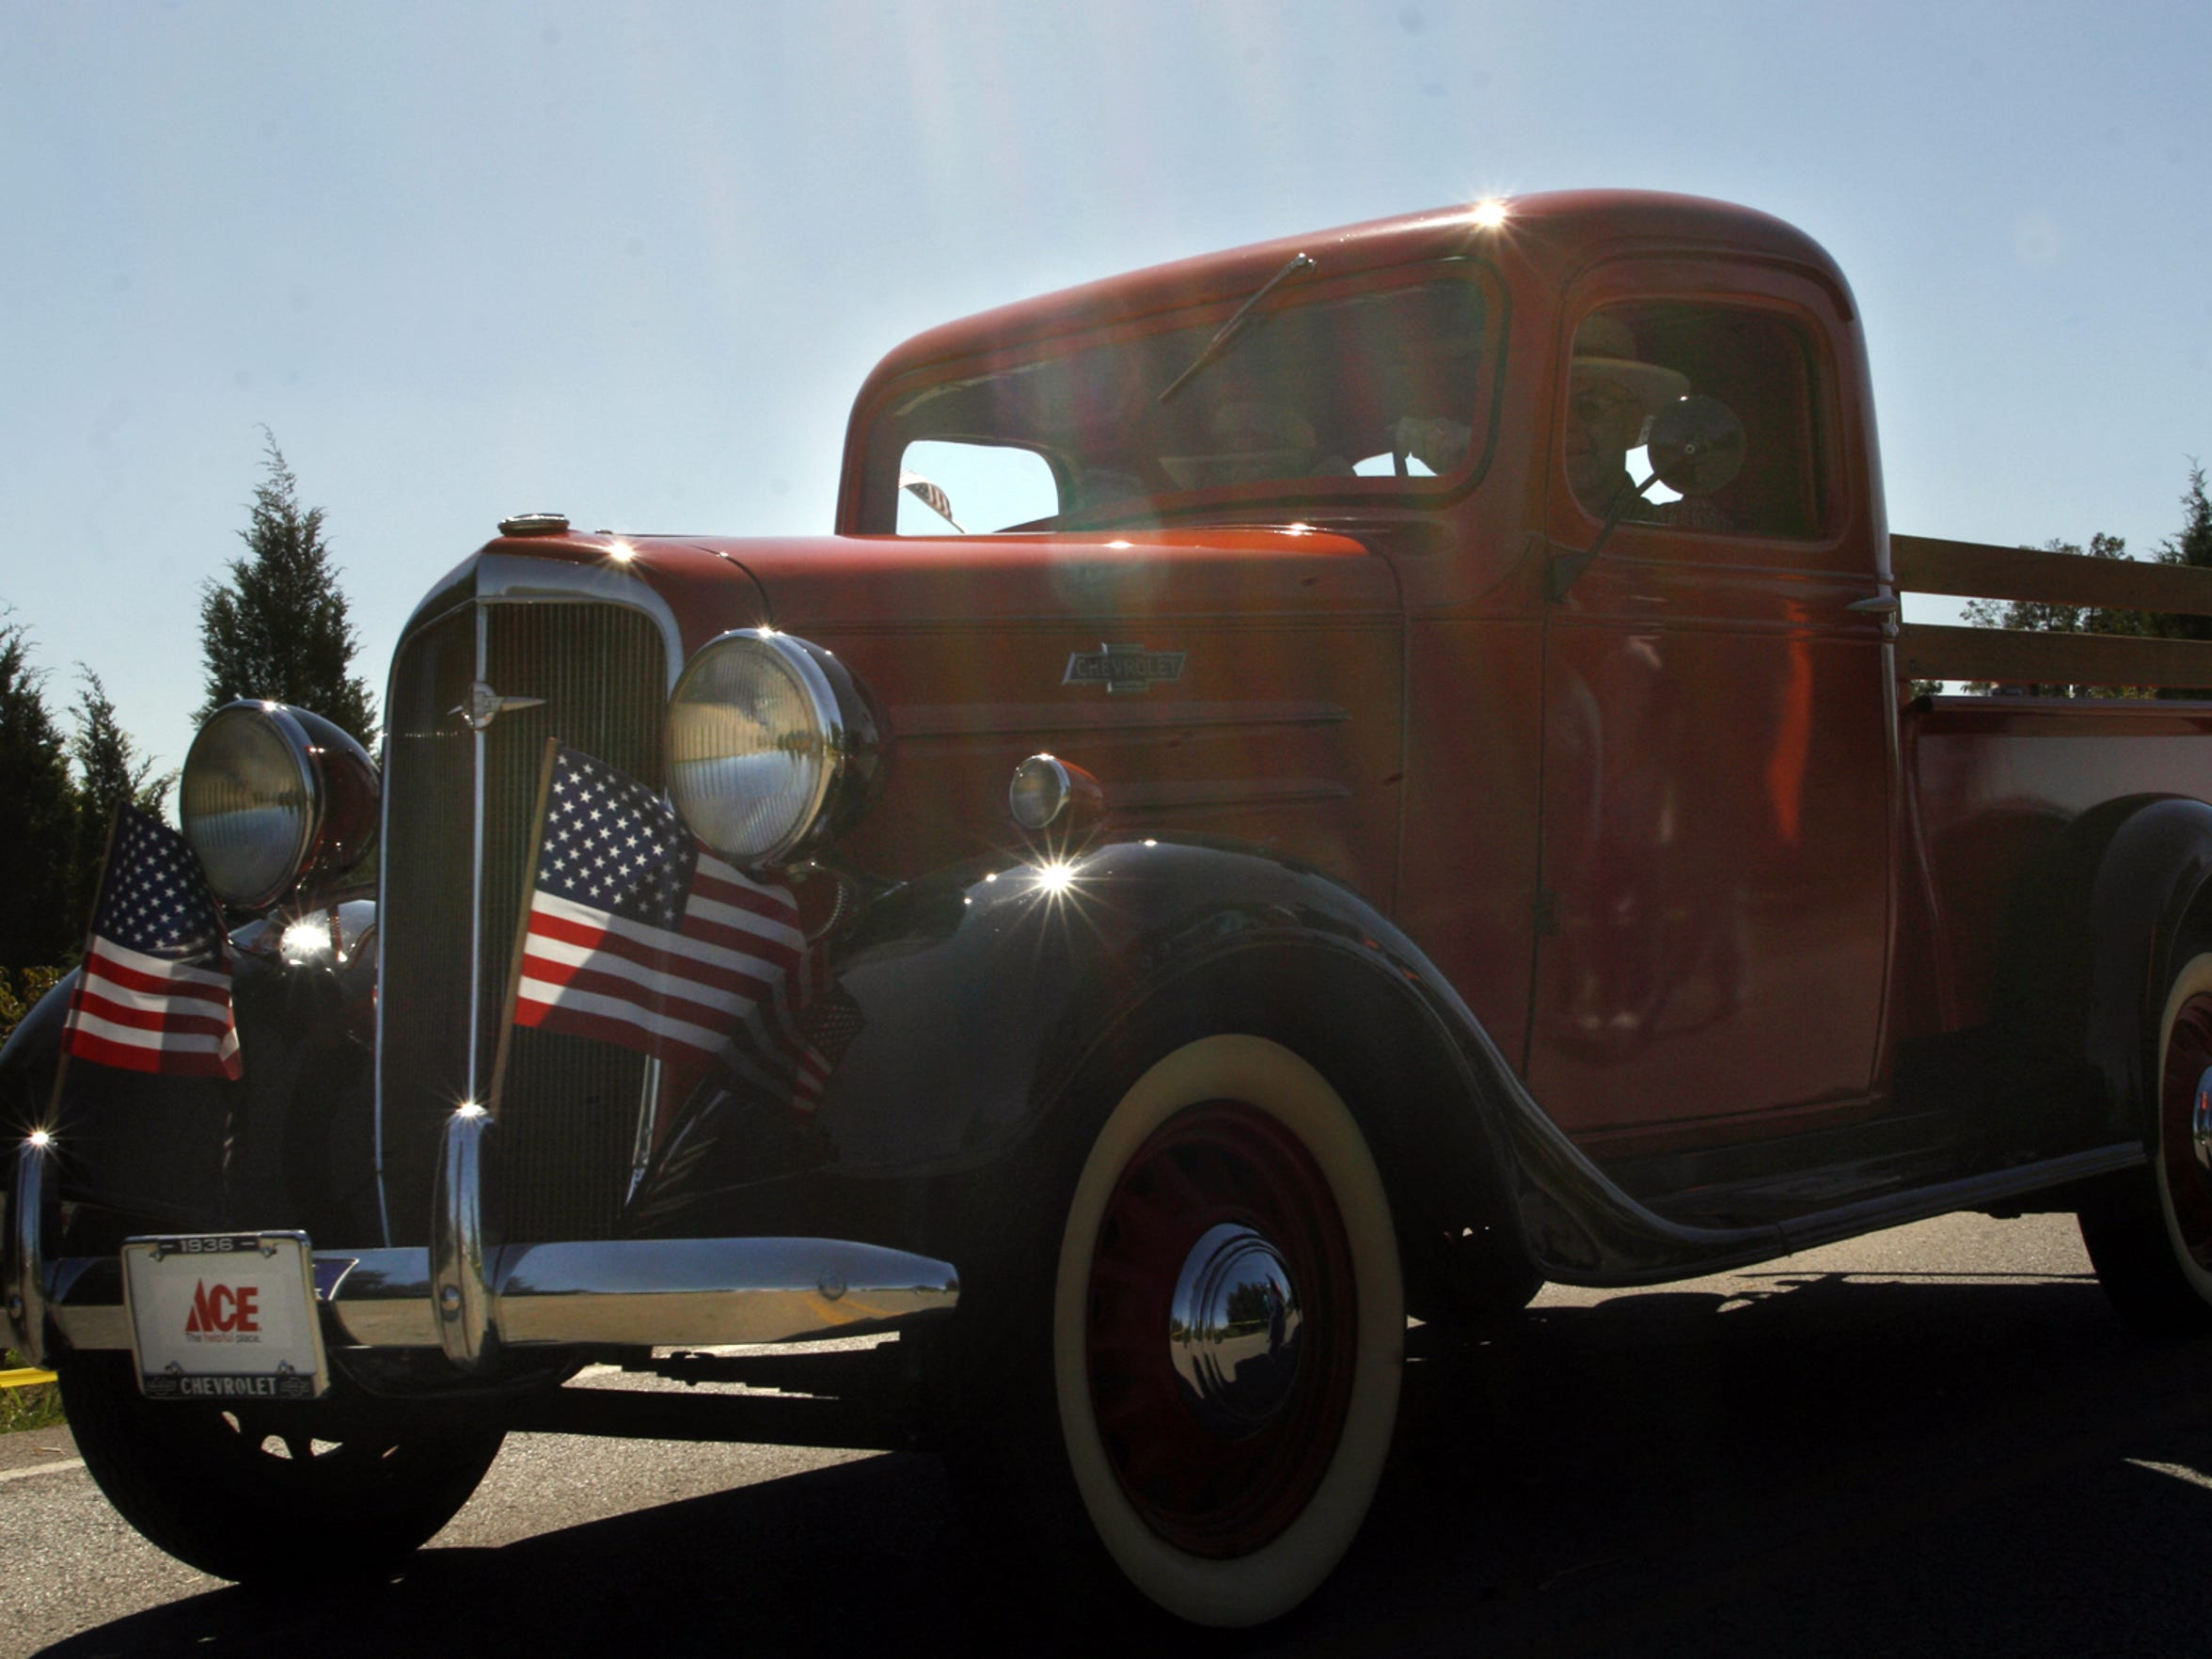 Old Timers' Festival includes a parade that will kick off at 10 a.m. from City Hall and end at Veterans Memorial Park, where festivities continue until late evening.